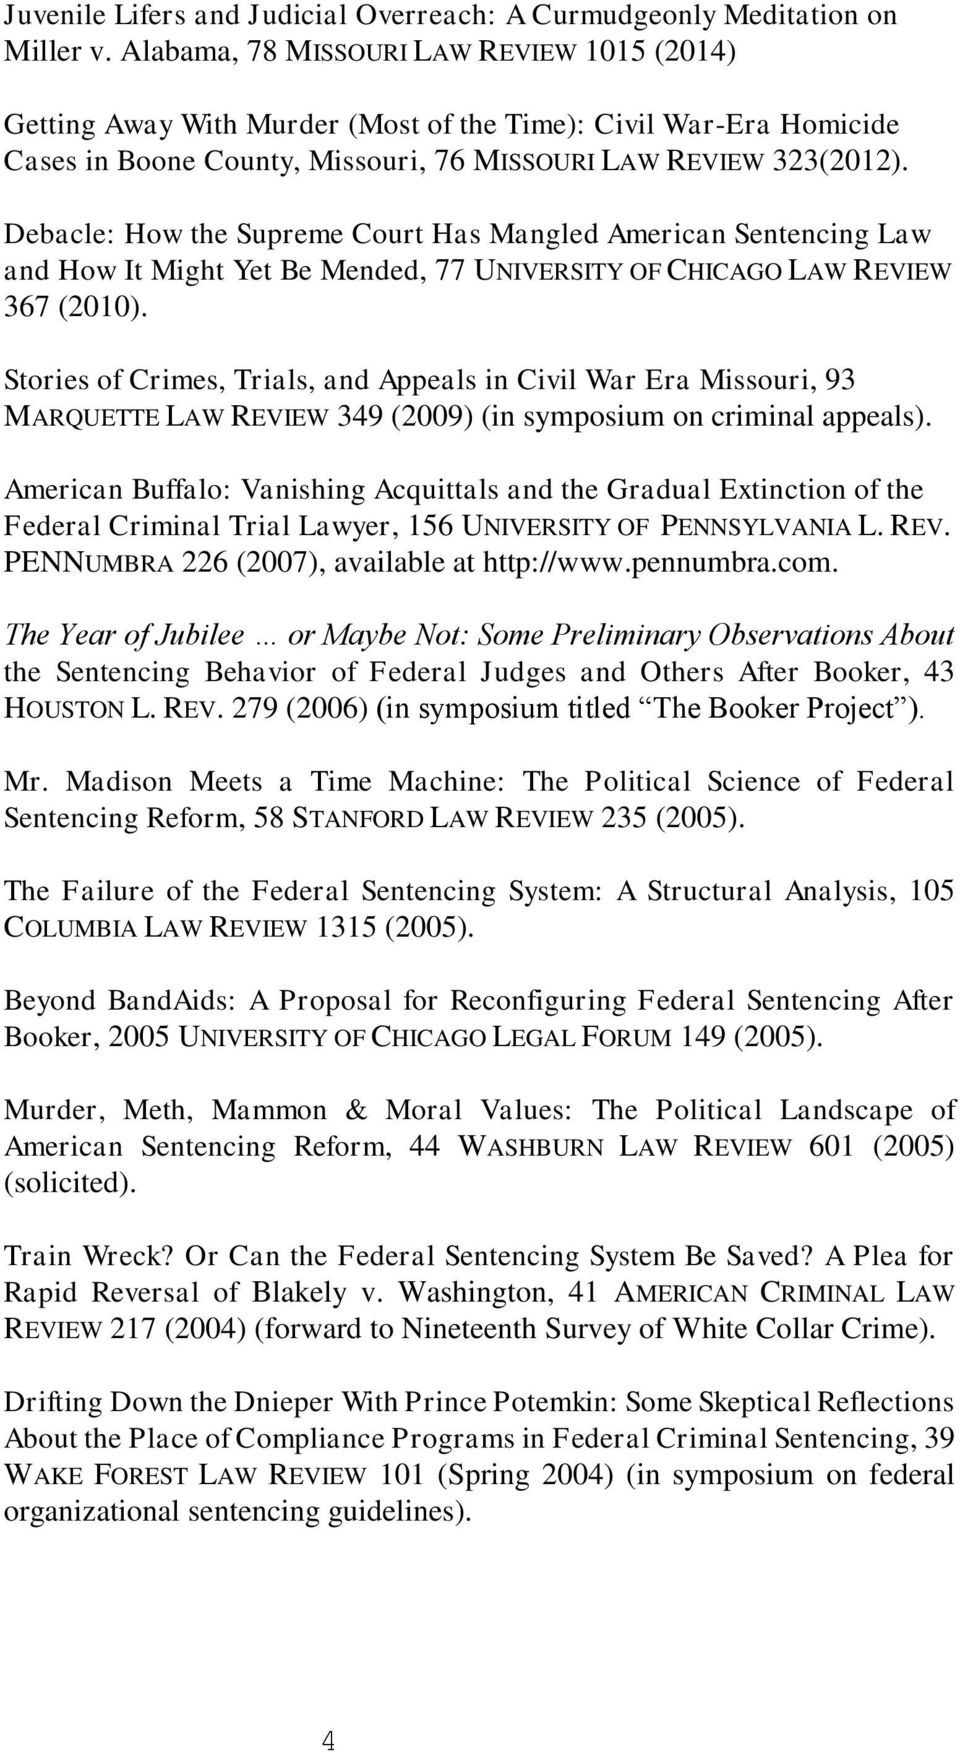 Debacle: How the Supreme Court Has Mangled American Sentencing Law and How It Might Yet Be Mended, 77 UNIVERSITY OF CHICAGO LAW REVIEW 367 (2010).